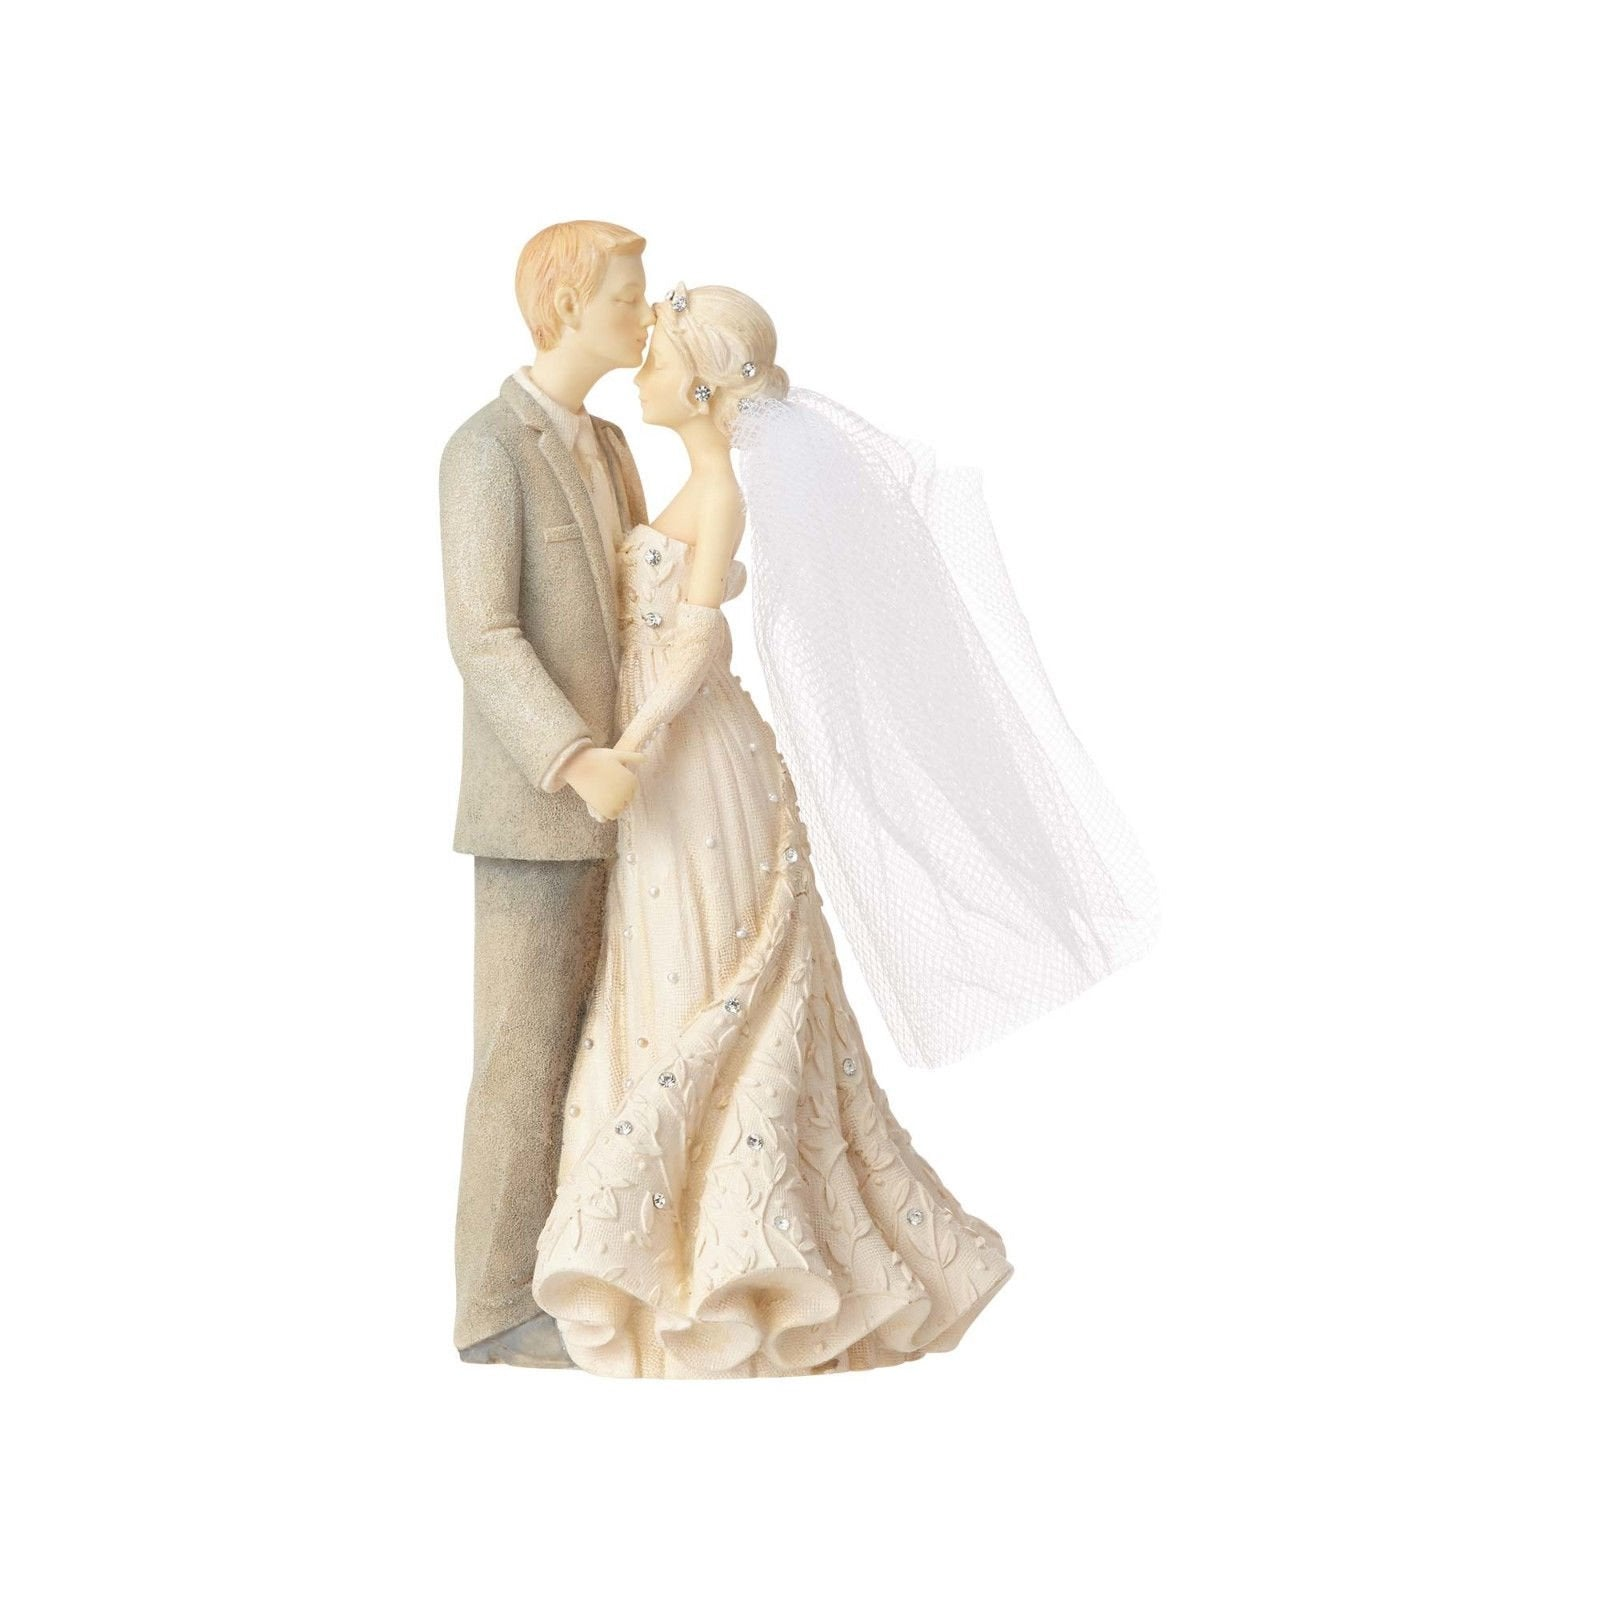 Bride and Groom Foundations Figurine